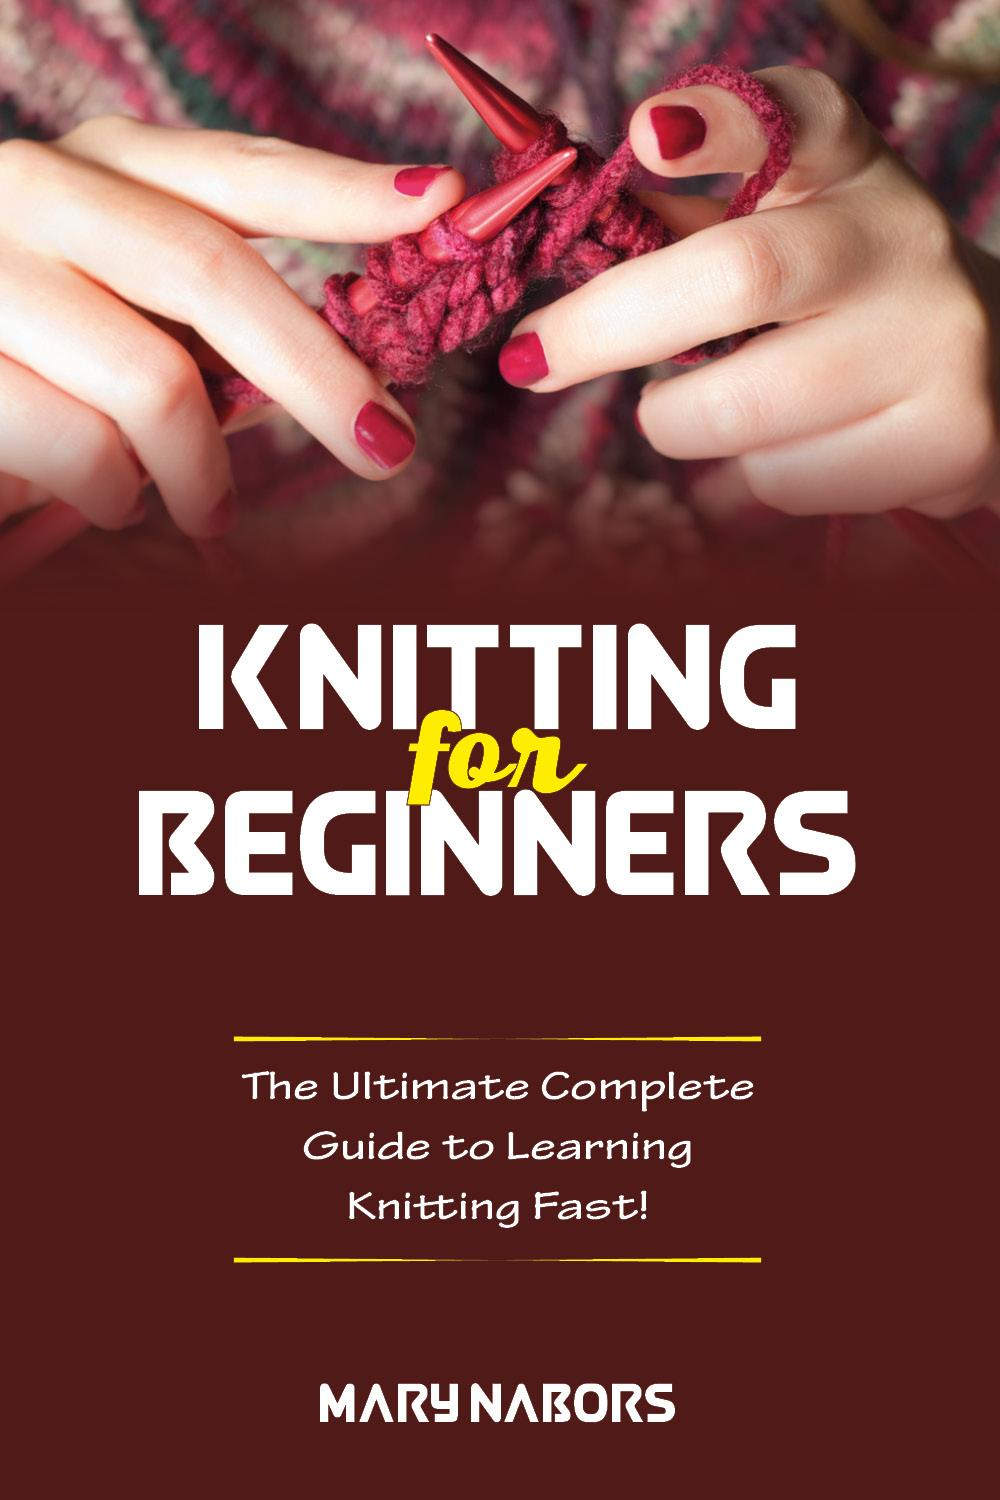 Knitting for beginners. The Ultimate Complete Guide To Learning Knitting Fast!